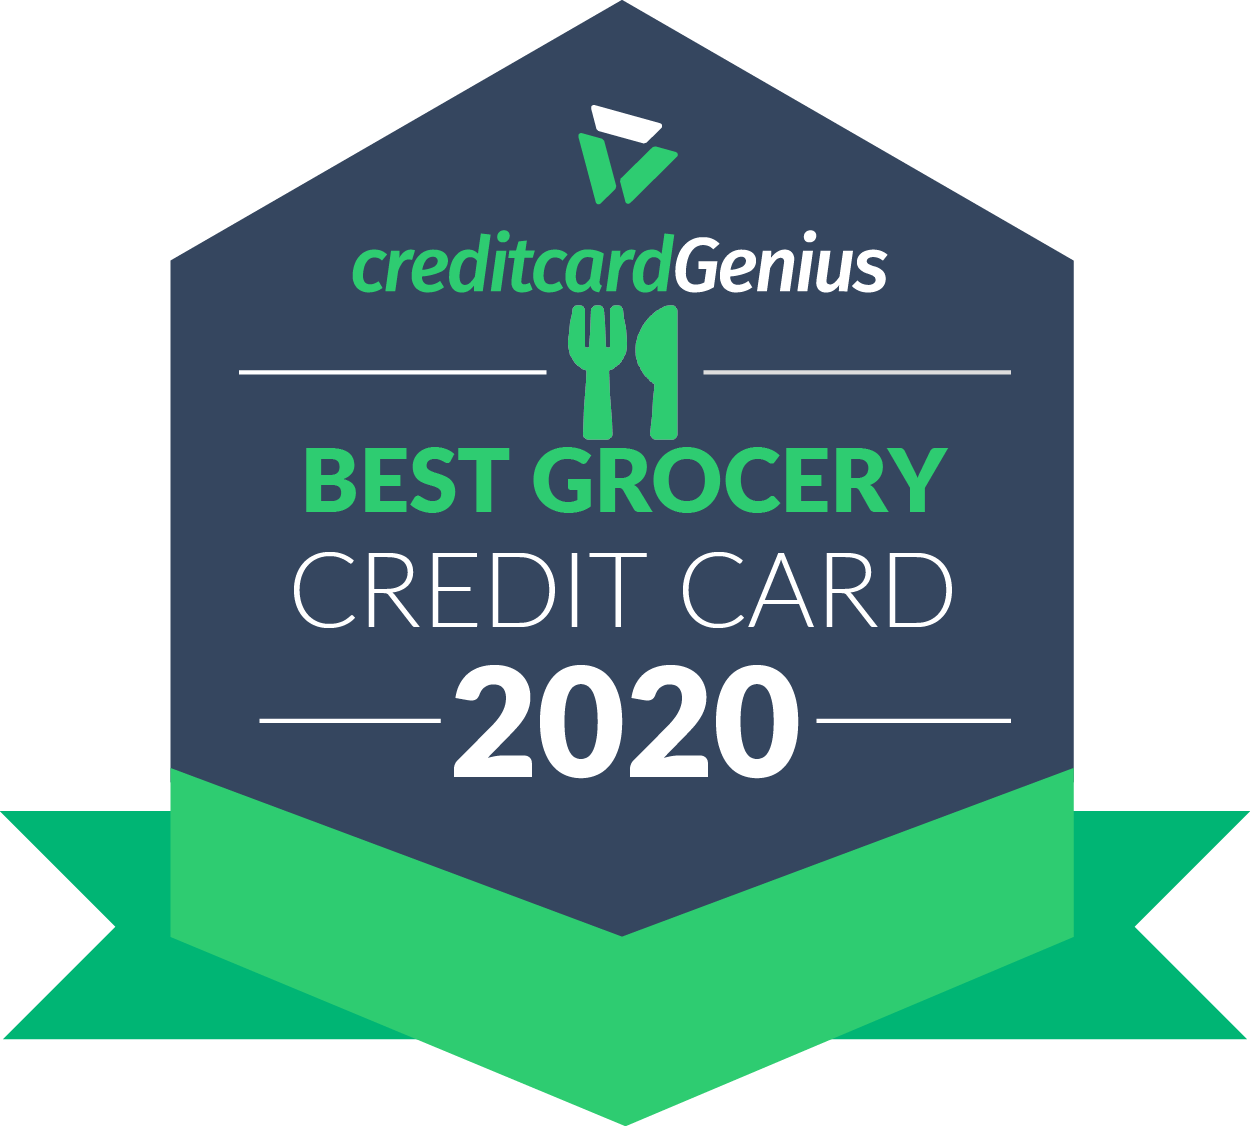 Best grocery credit cards in Canada for 2020 award seal